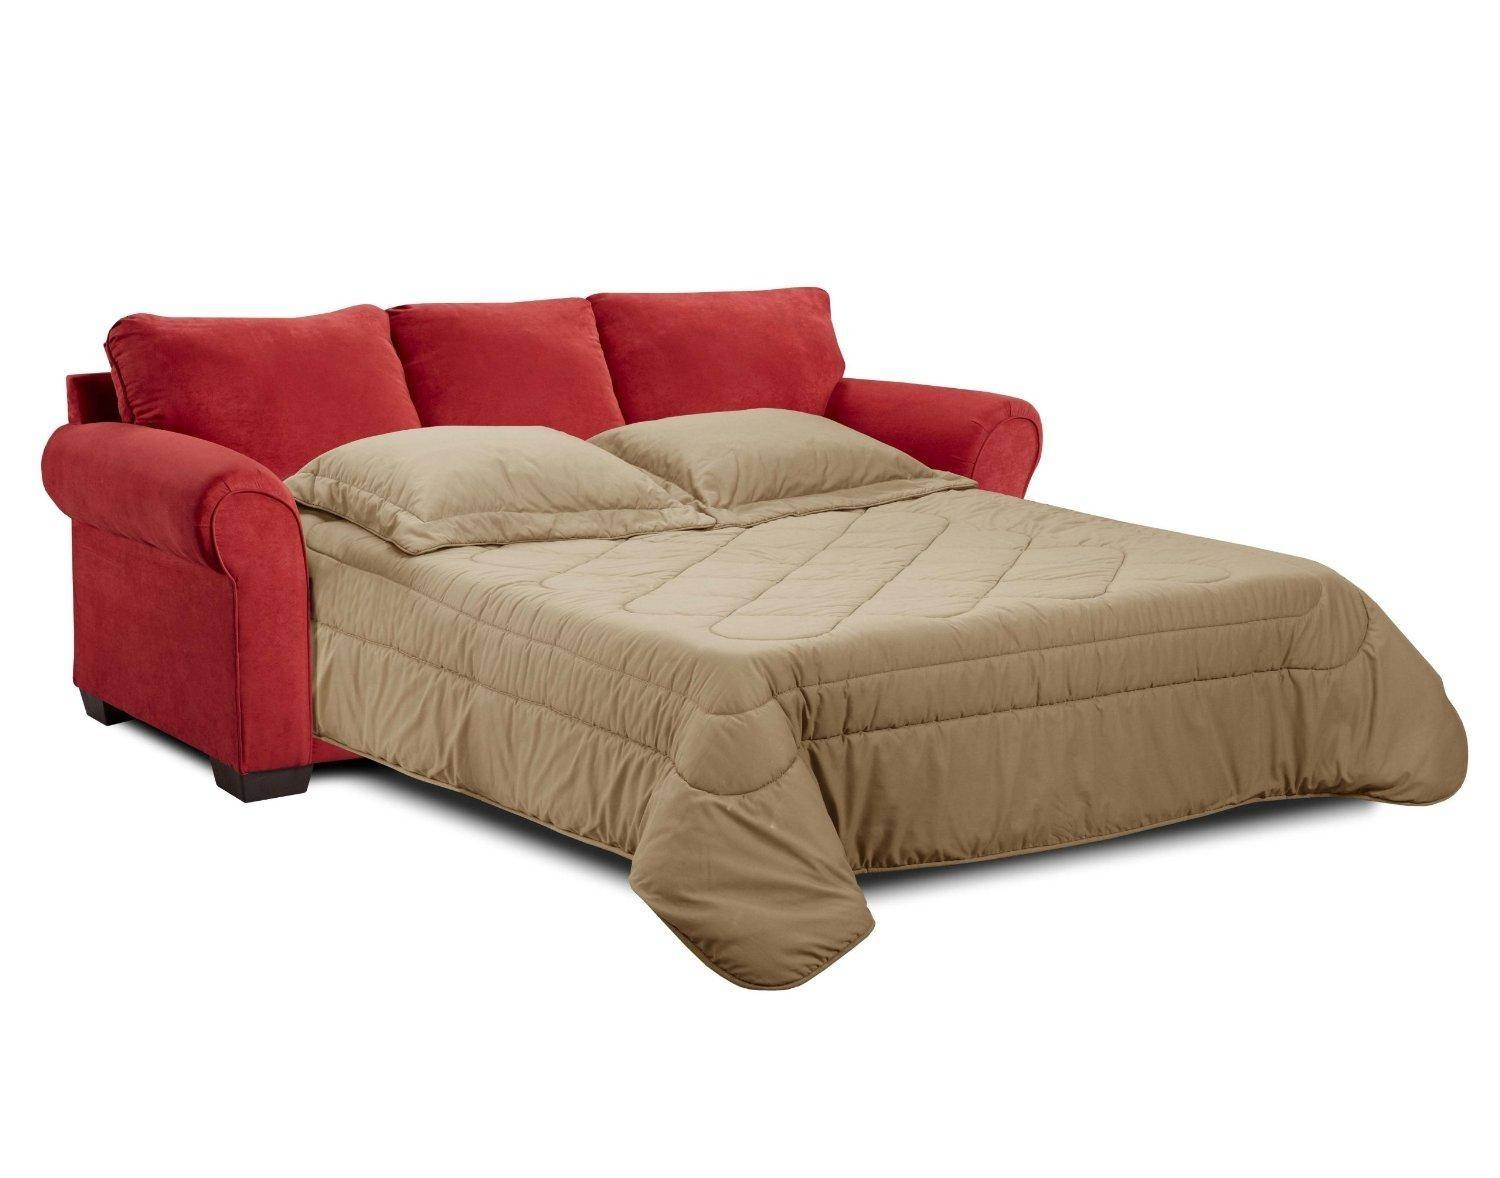 20 Best Collection Of Sofa Beds Sheets | Sofa Ideas Regarding Sheets For Sofa Beds Mattress (View 2 of 15)